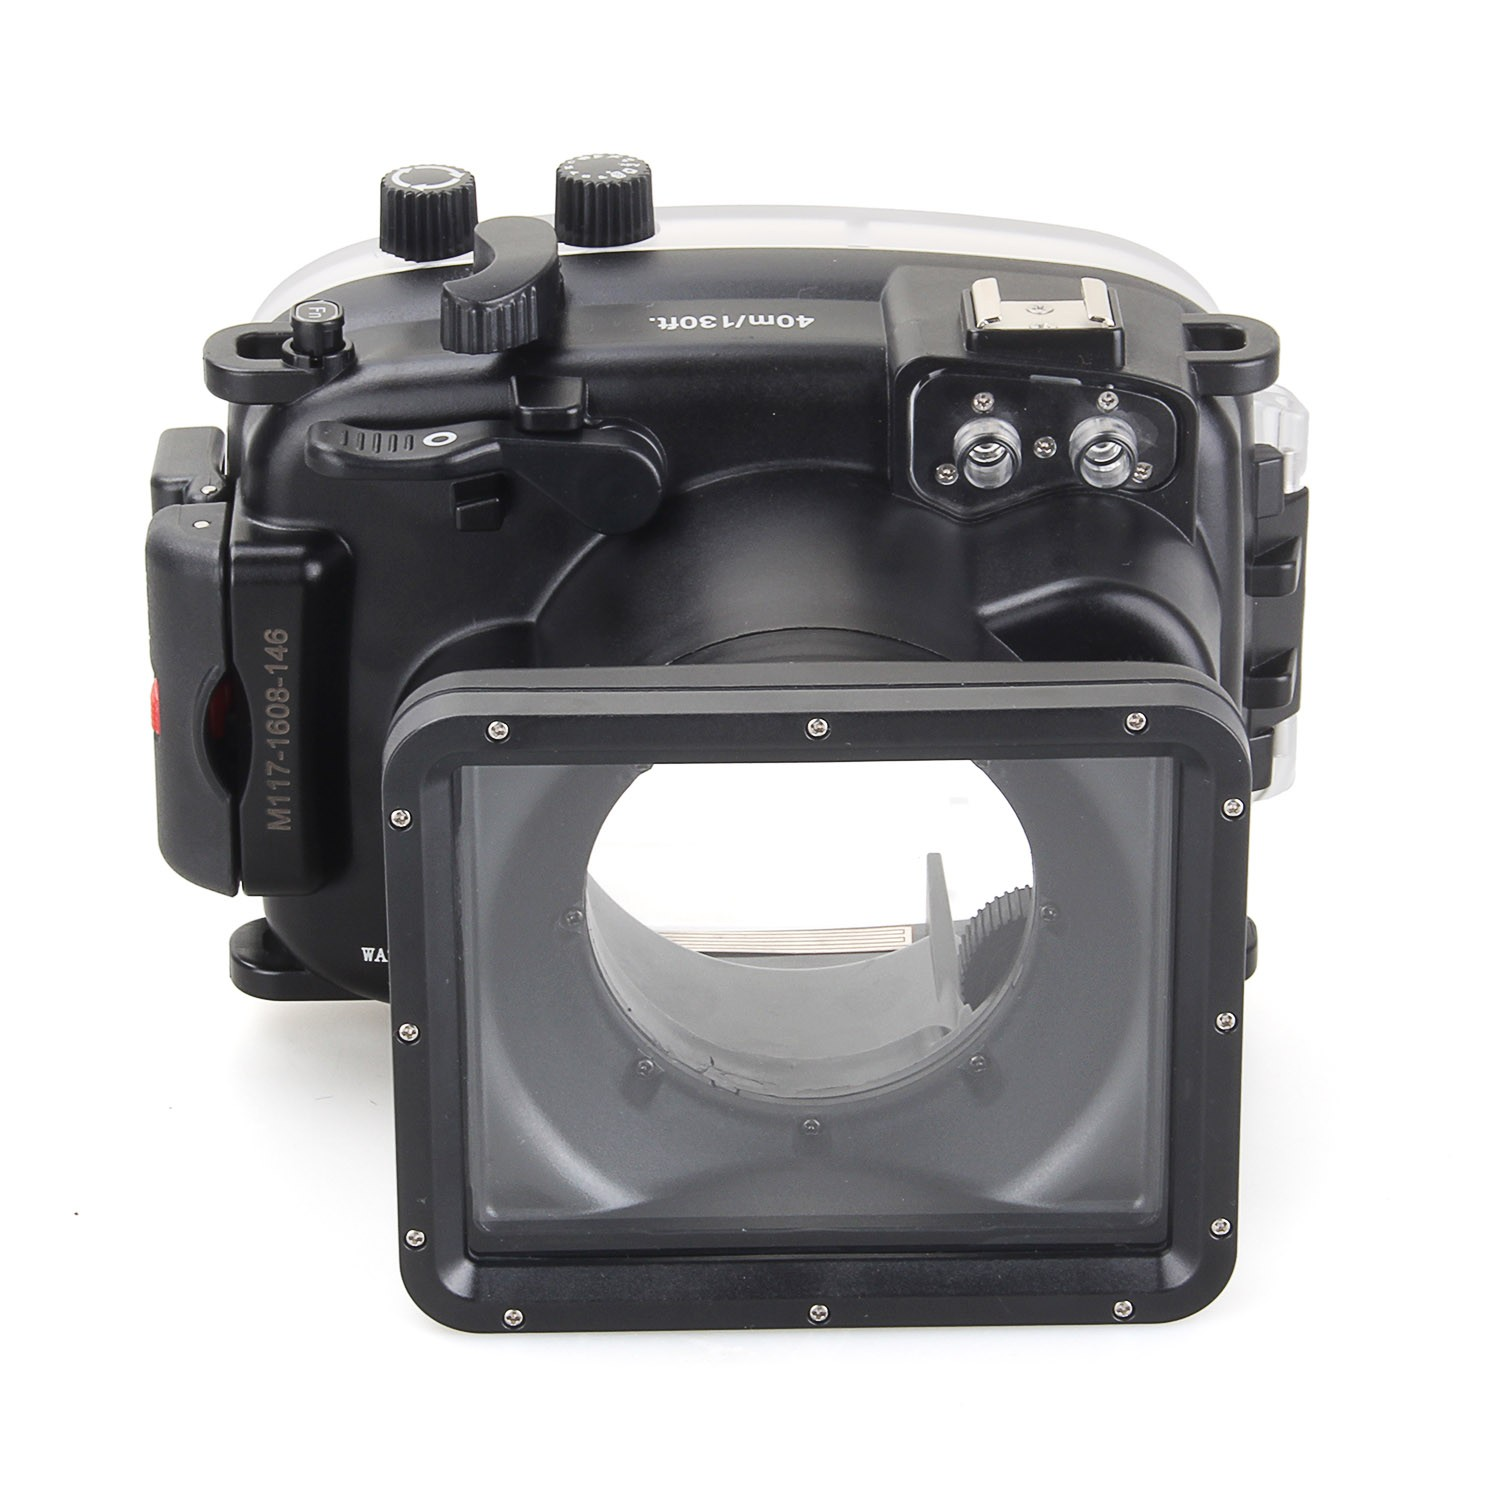 DF Meikon 40m/130ft Underwater Diving Camera Housing Waterproof Camera Bags Case for Fujifilm X t10 (16 50mm) Camera